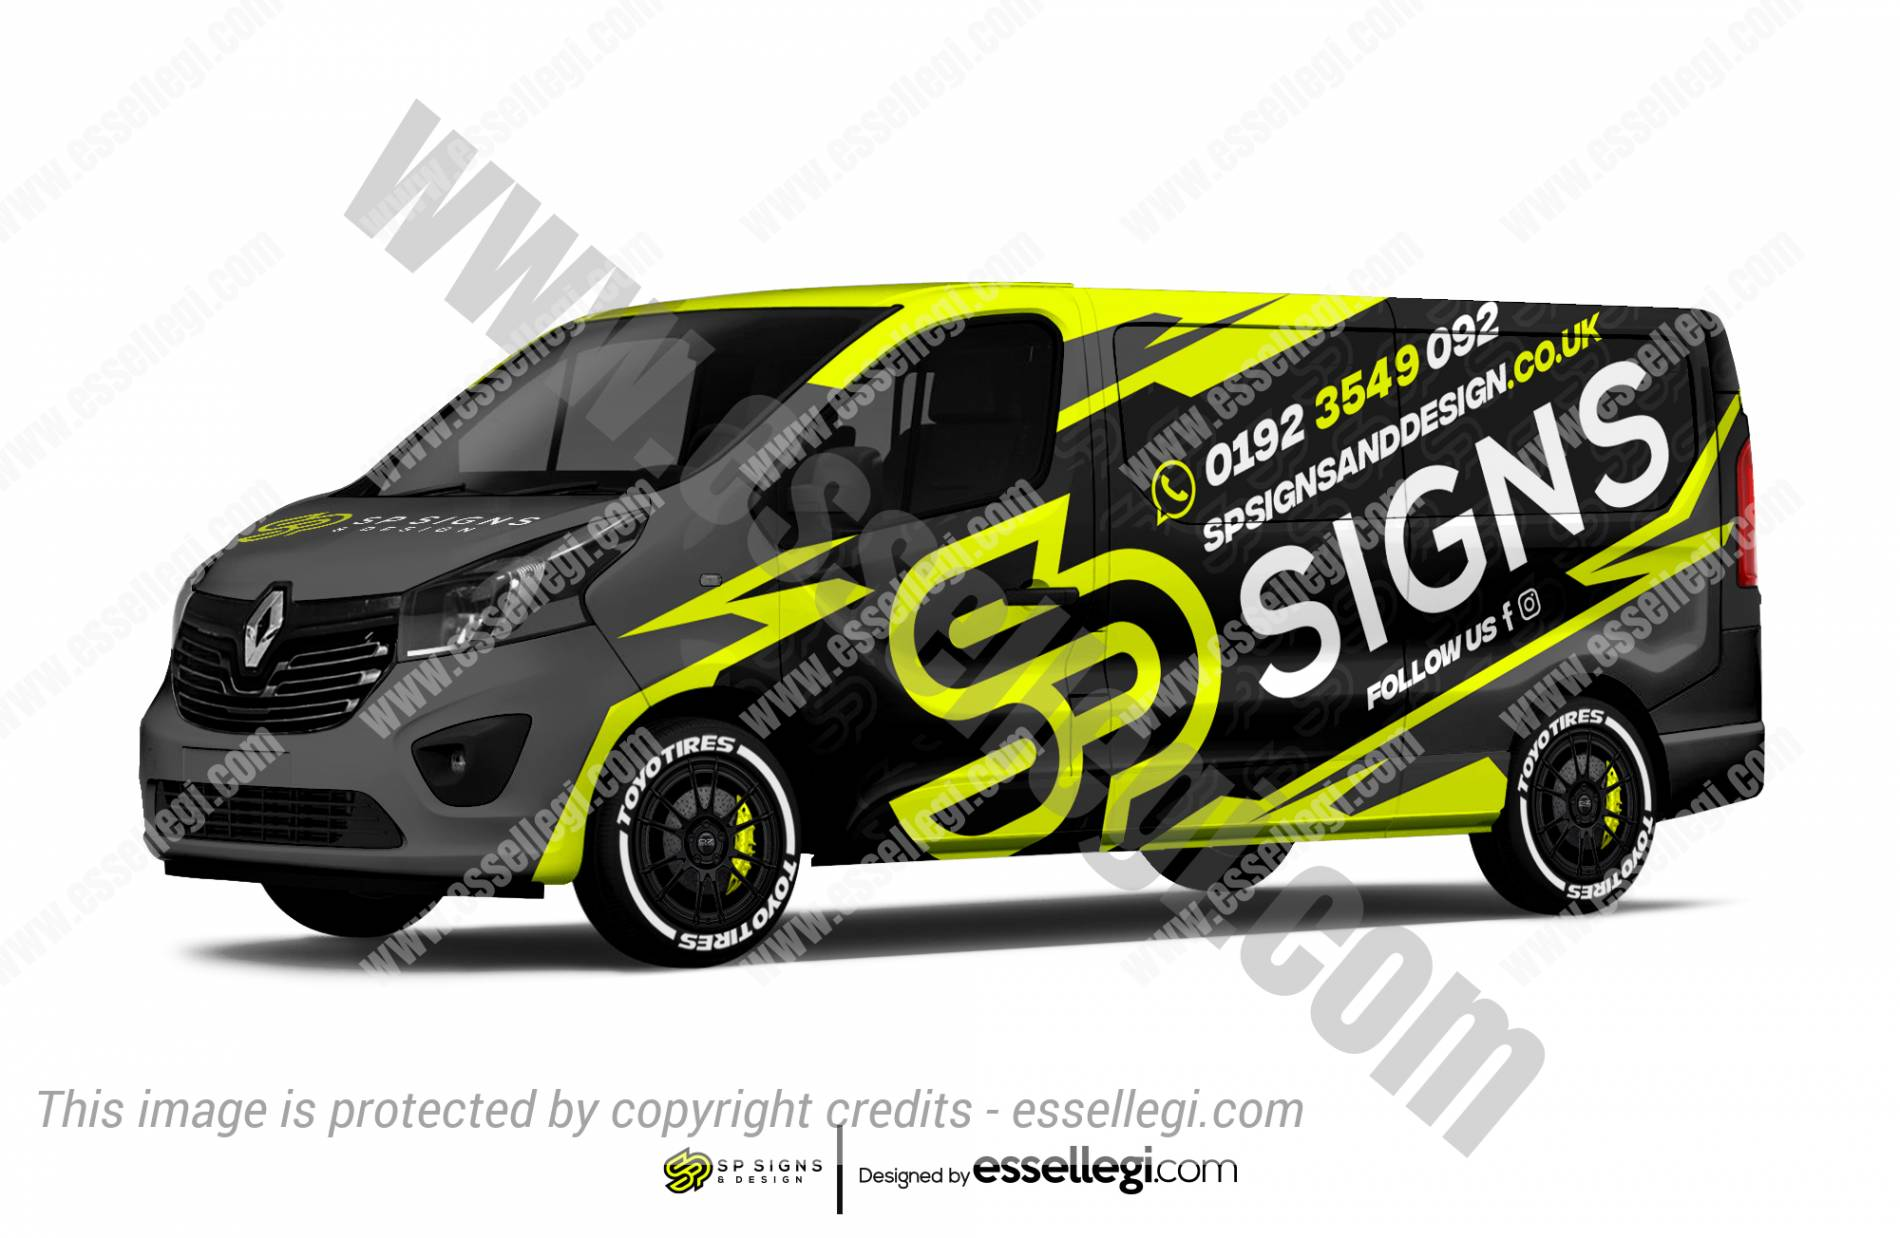 Renault Trafic Wrap Design. Renault Trafic Wrap | Van Wrap Design by Essellegi. Van Signs, Van Signage, Van Wrapping, Van Signwriting, Van Wrap Designer, Signs for Van, Van Logo, Van Graphic by Essellegi.